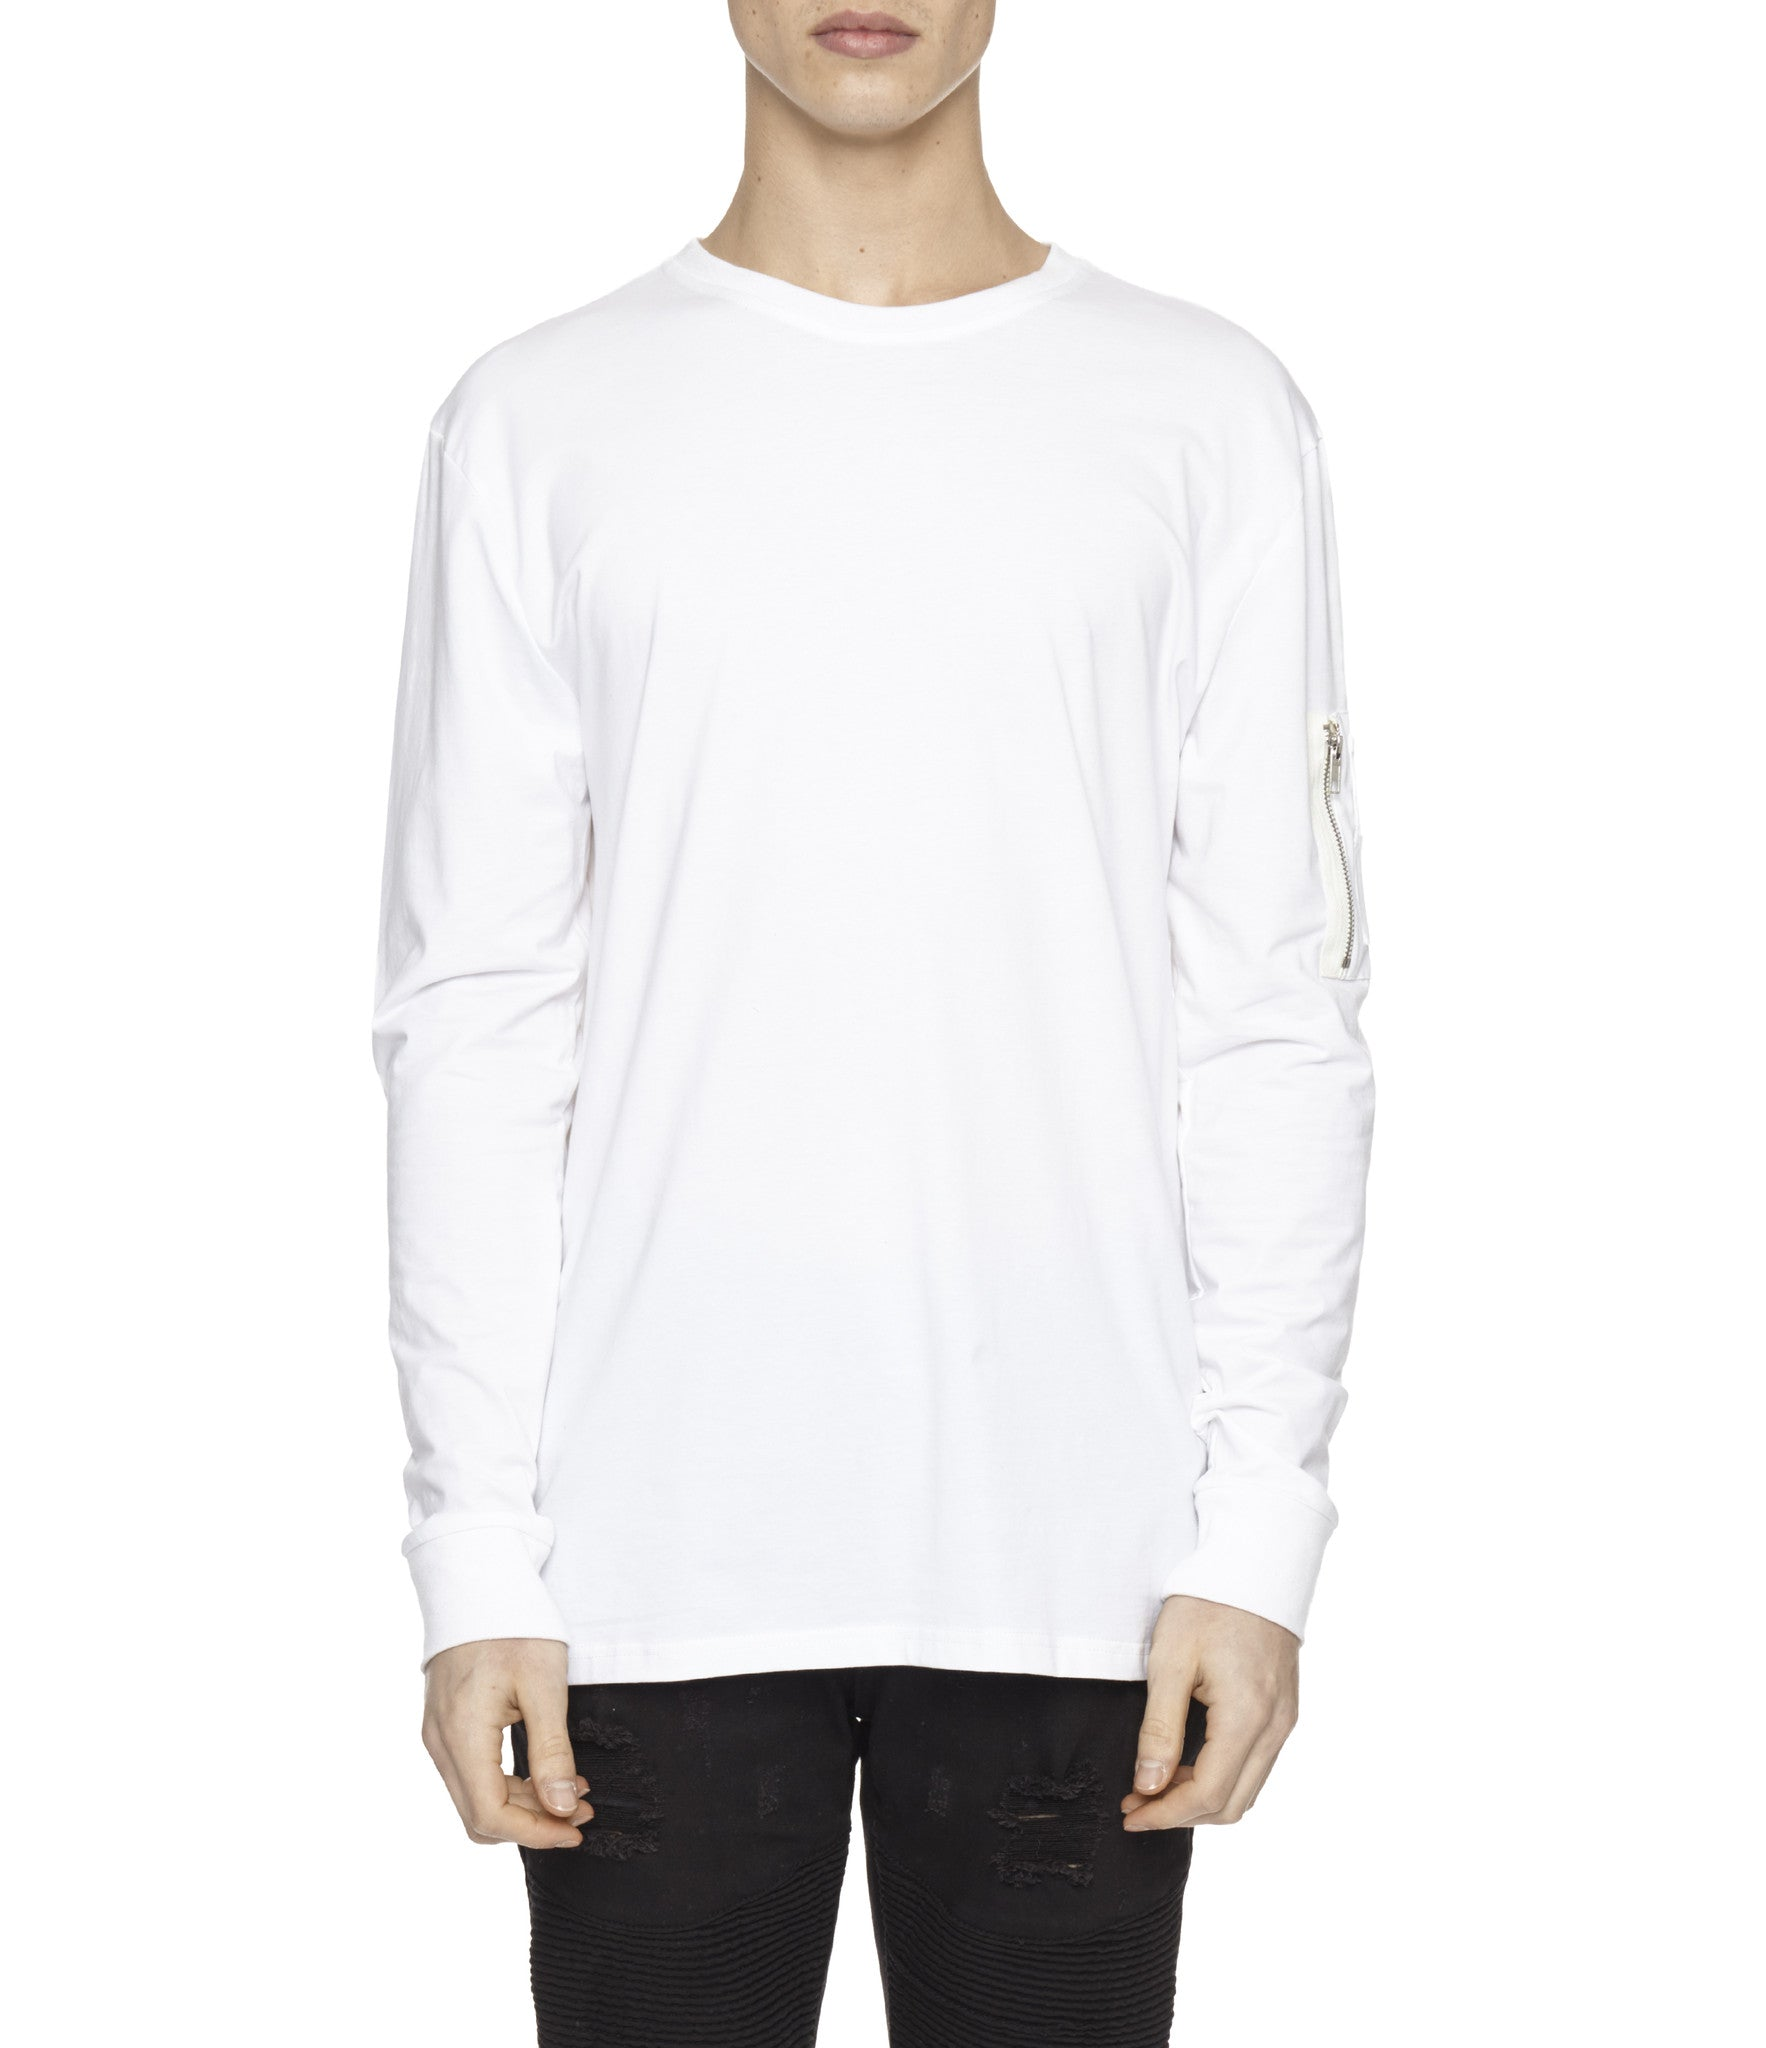 LS303 Utility Long-Sleeve Tee - White - underated london - underatedco - 4